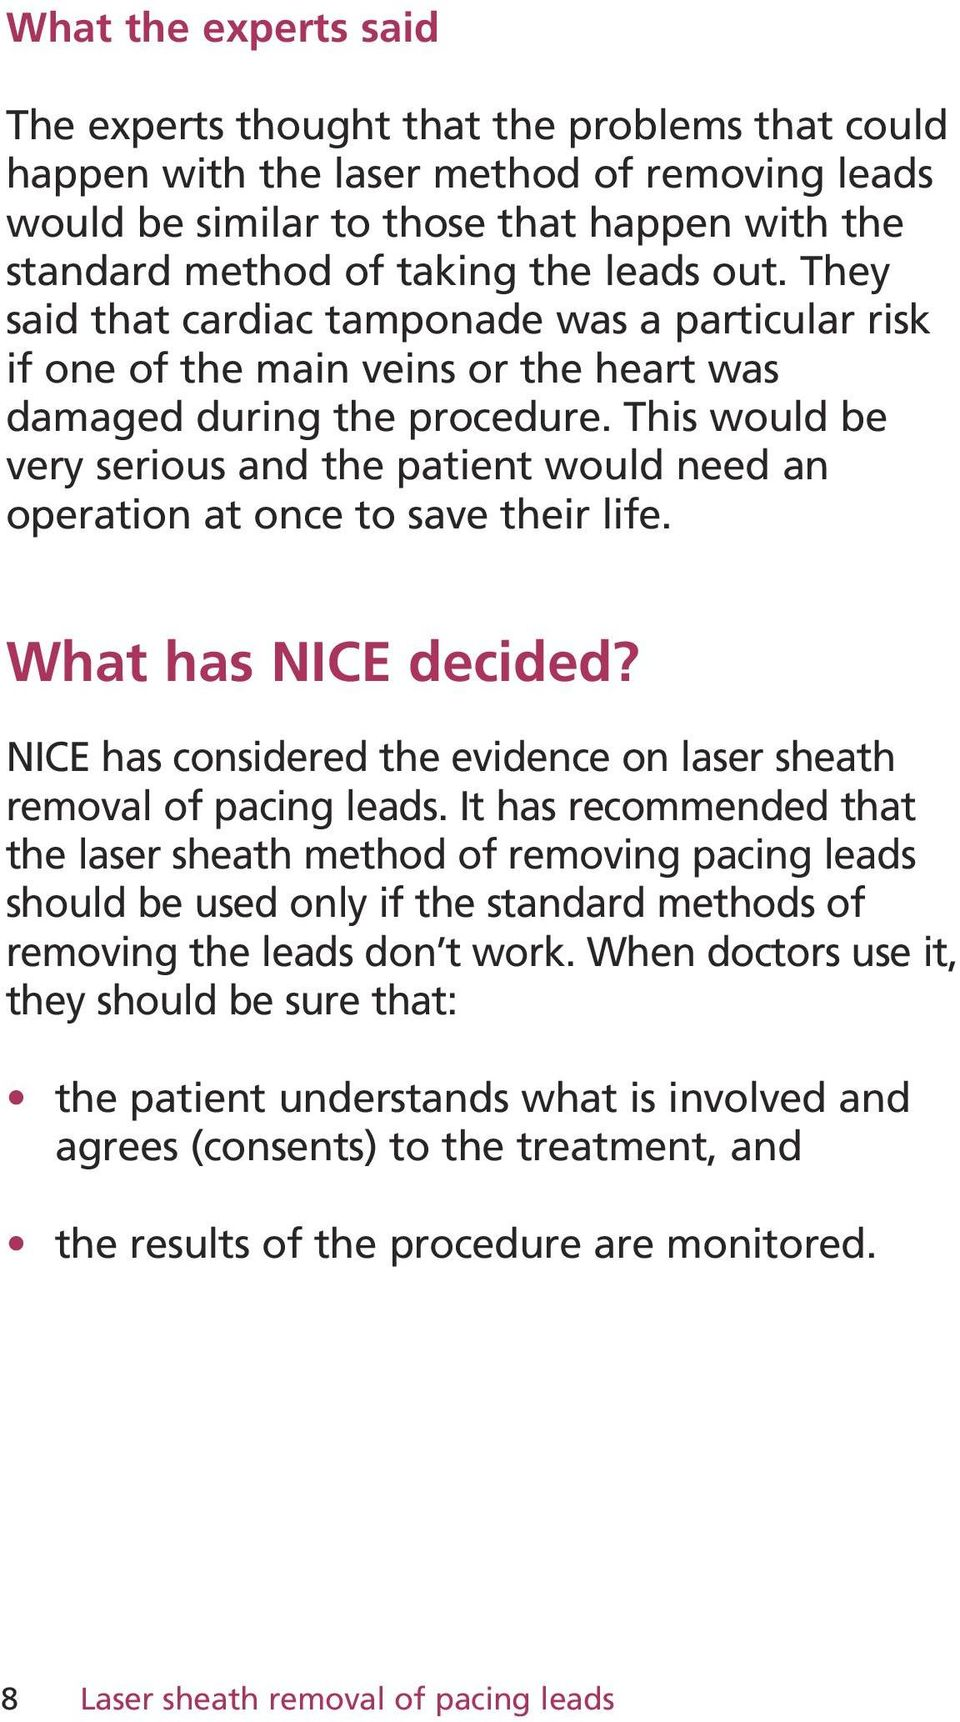 This would be very serious and the patient would need an operation at once to save their life. What has NICE decided? NICE has considered the evidence on laser sheath removal of pacing leads.